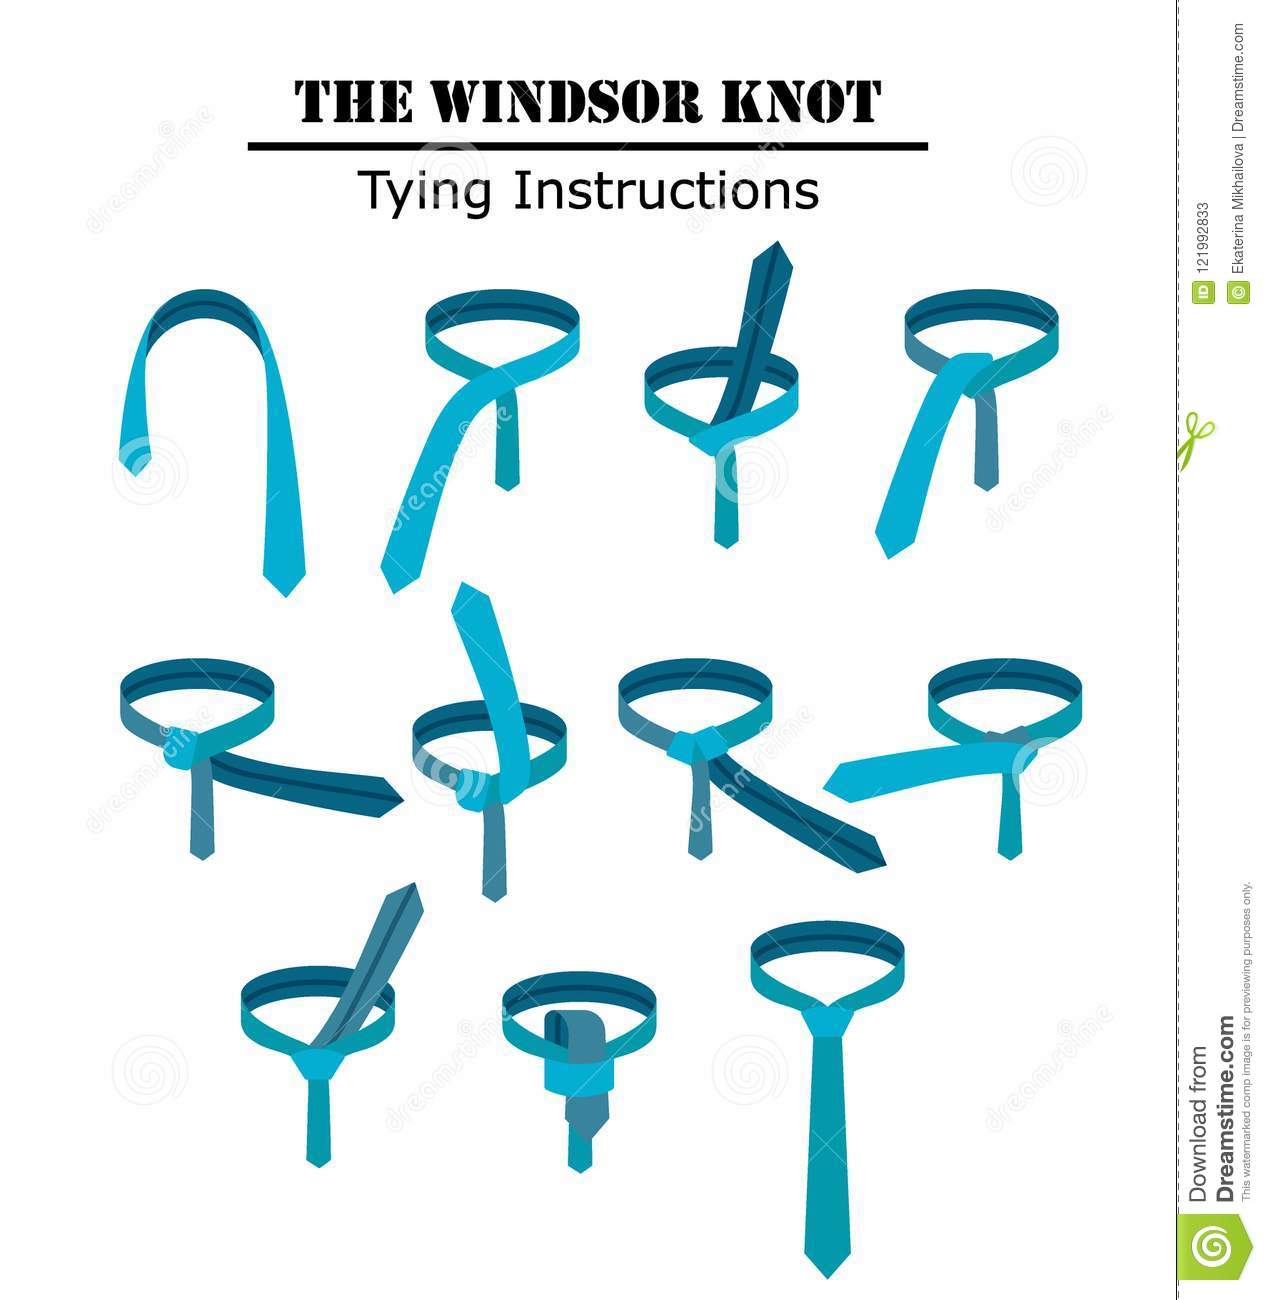 Basic Knot Tying Diagrams A Tie Diagram Windsor Instructions Isolated White Background Guide How To Necktie Flat Illustration Vector